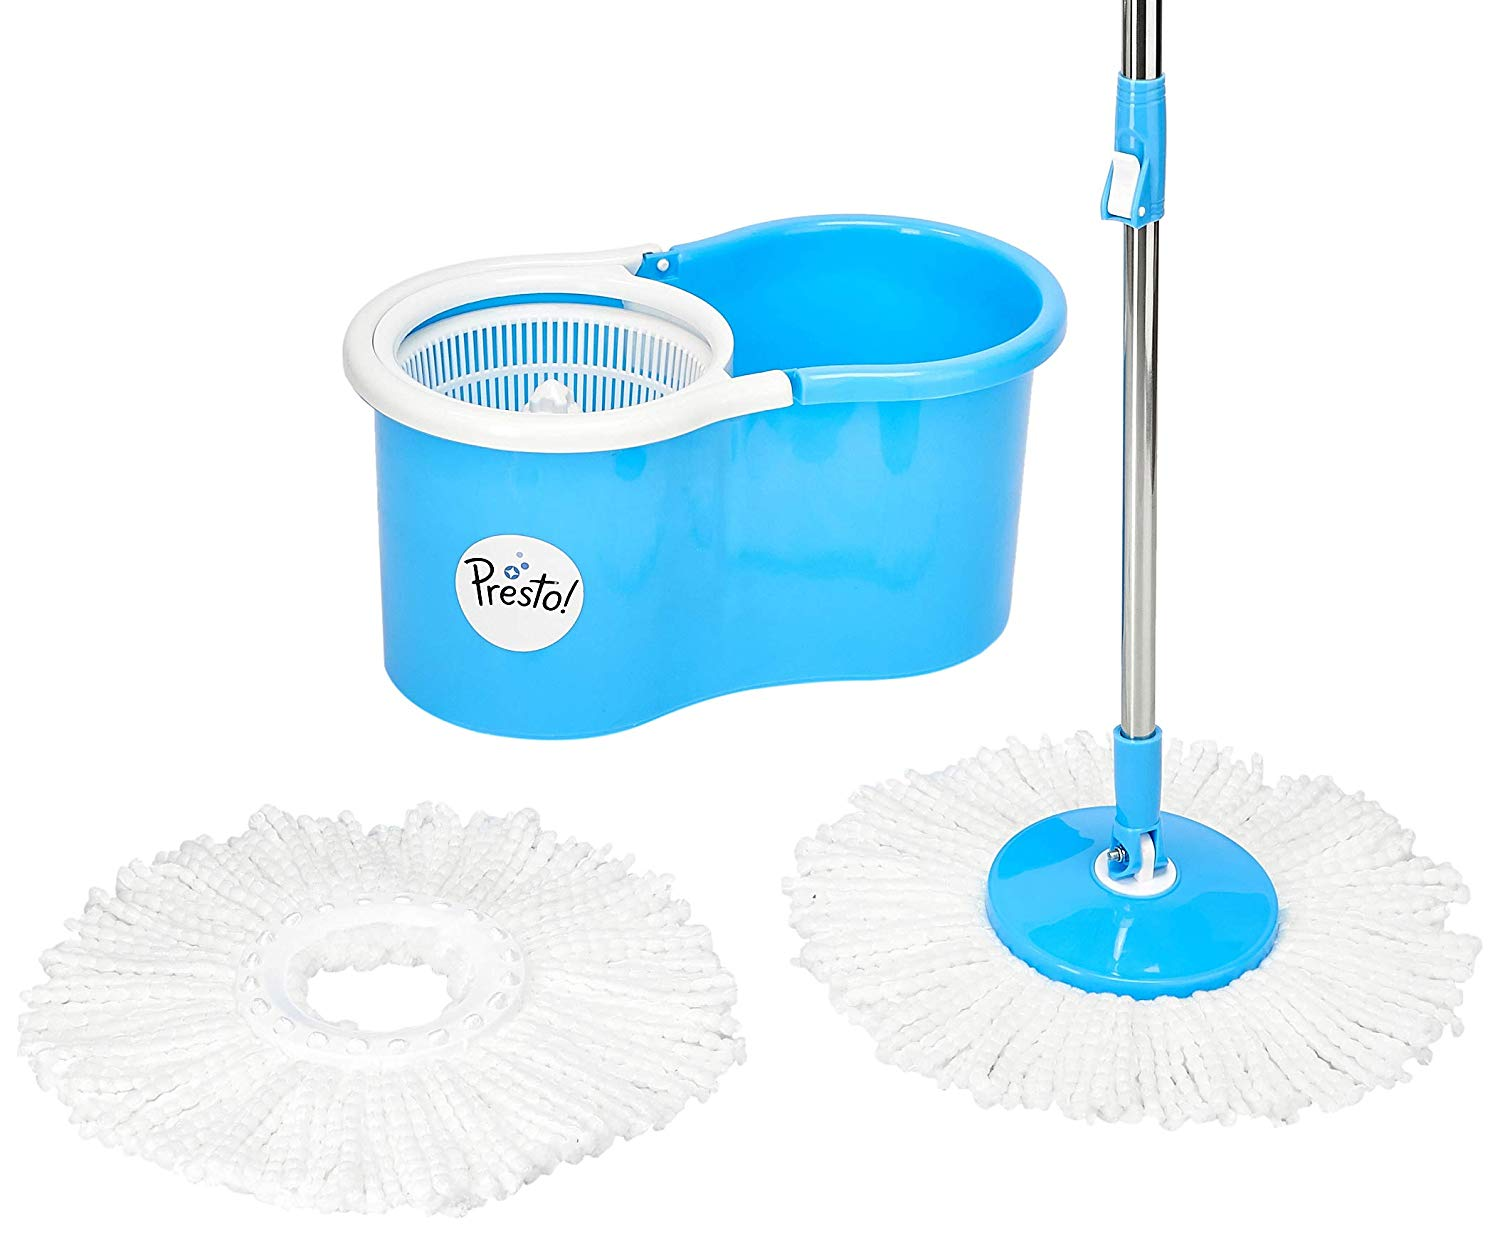 Amazon Brand - Presto! Spin Mop Set with Easy Wheels and Extra Mop Refill